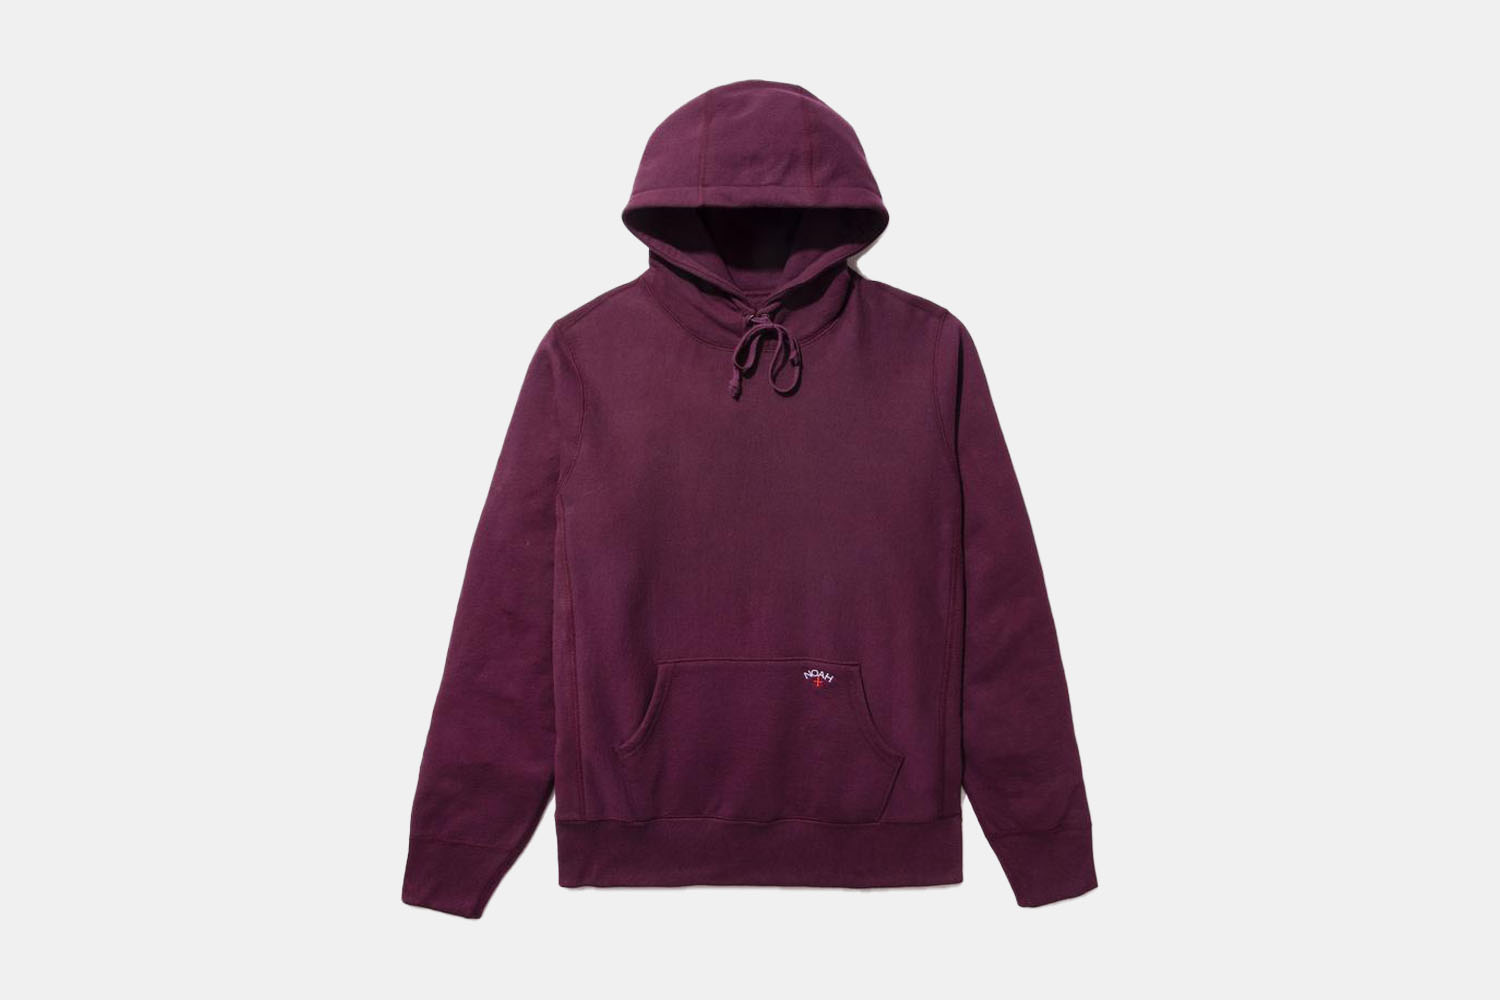 A plum colored hoodie